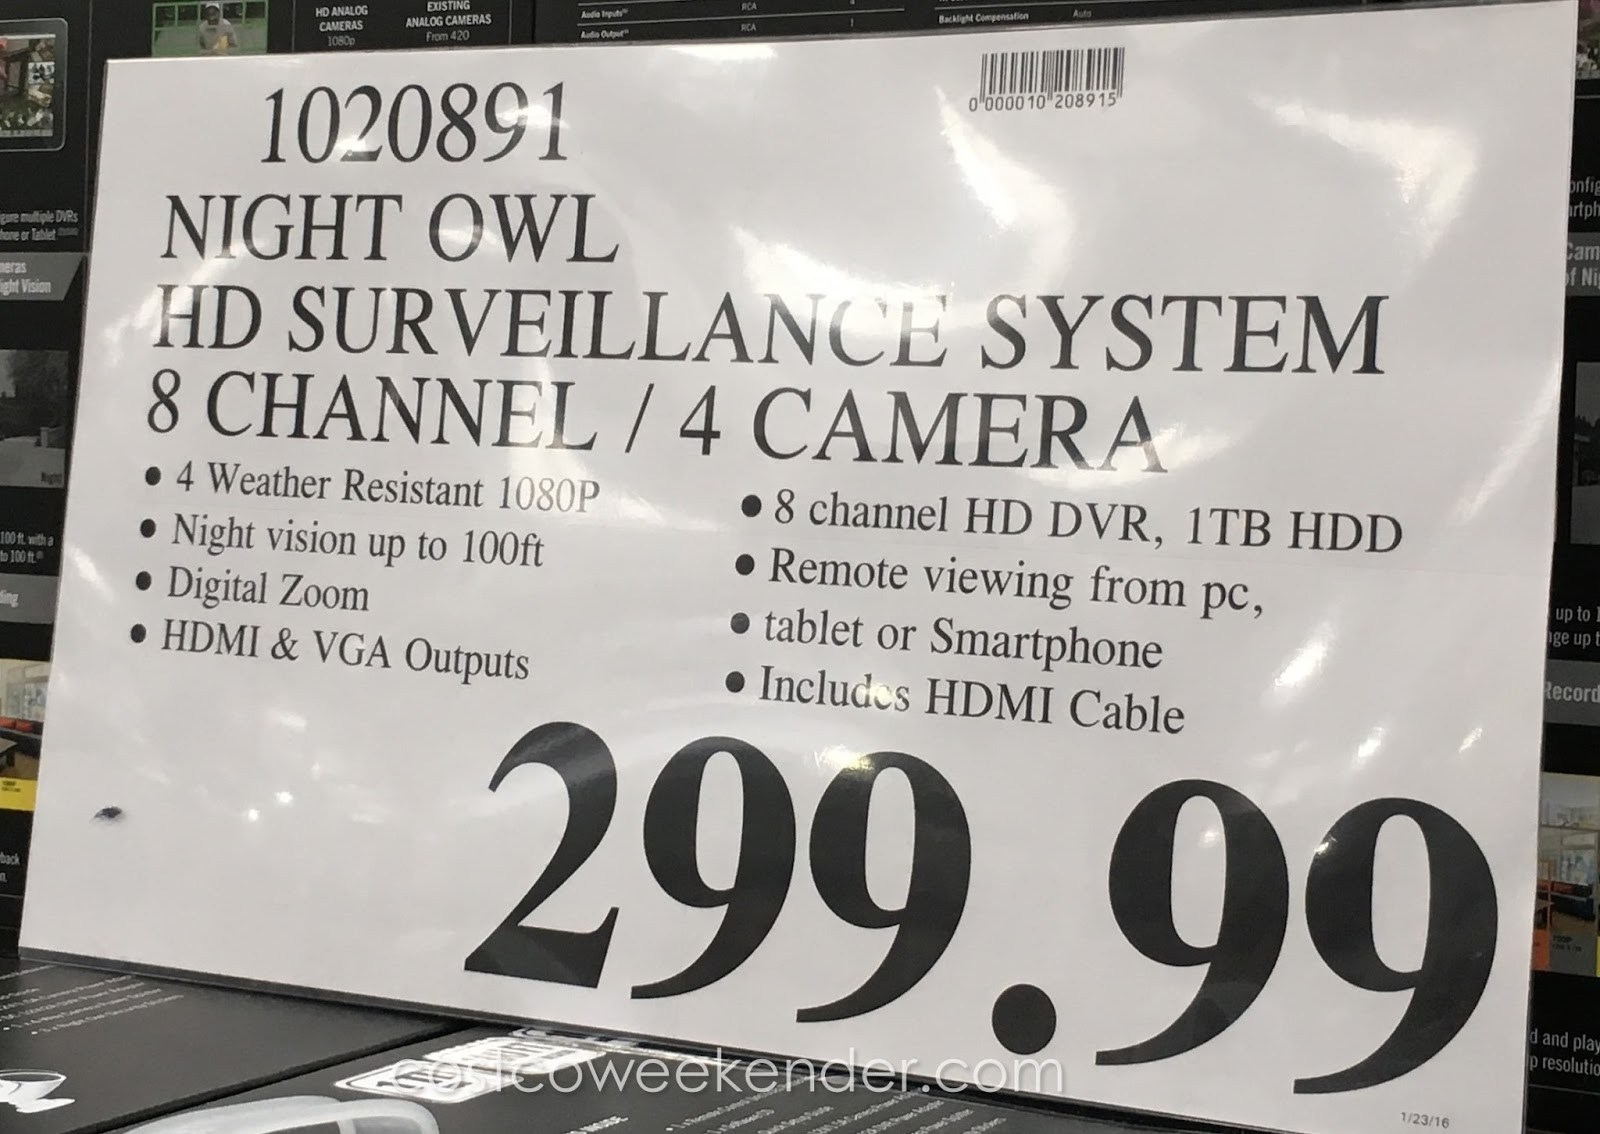 Night Owl C 841 A10 Hd Video Security System Costco